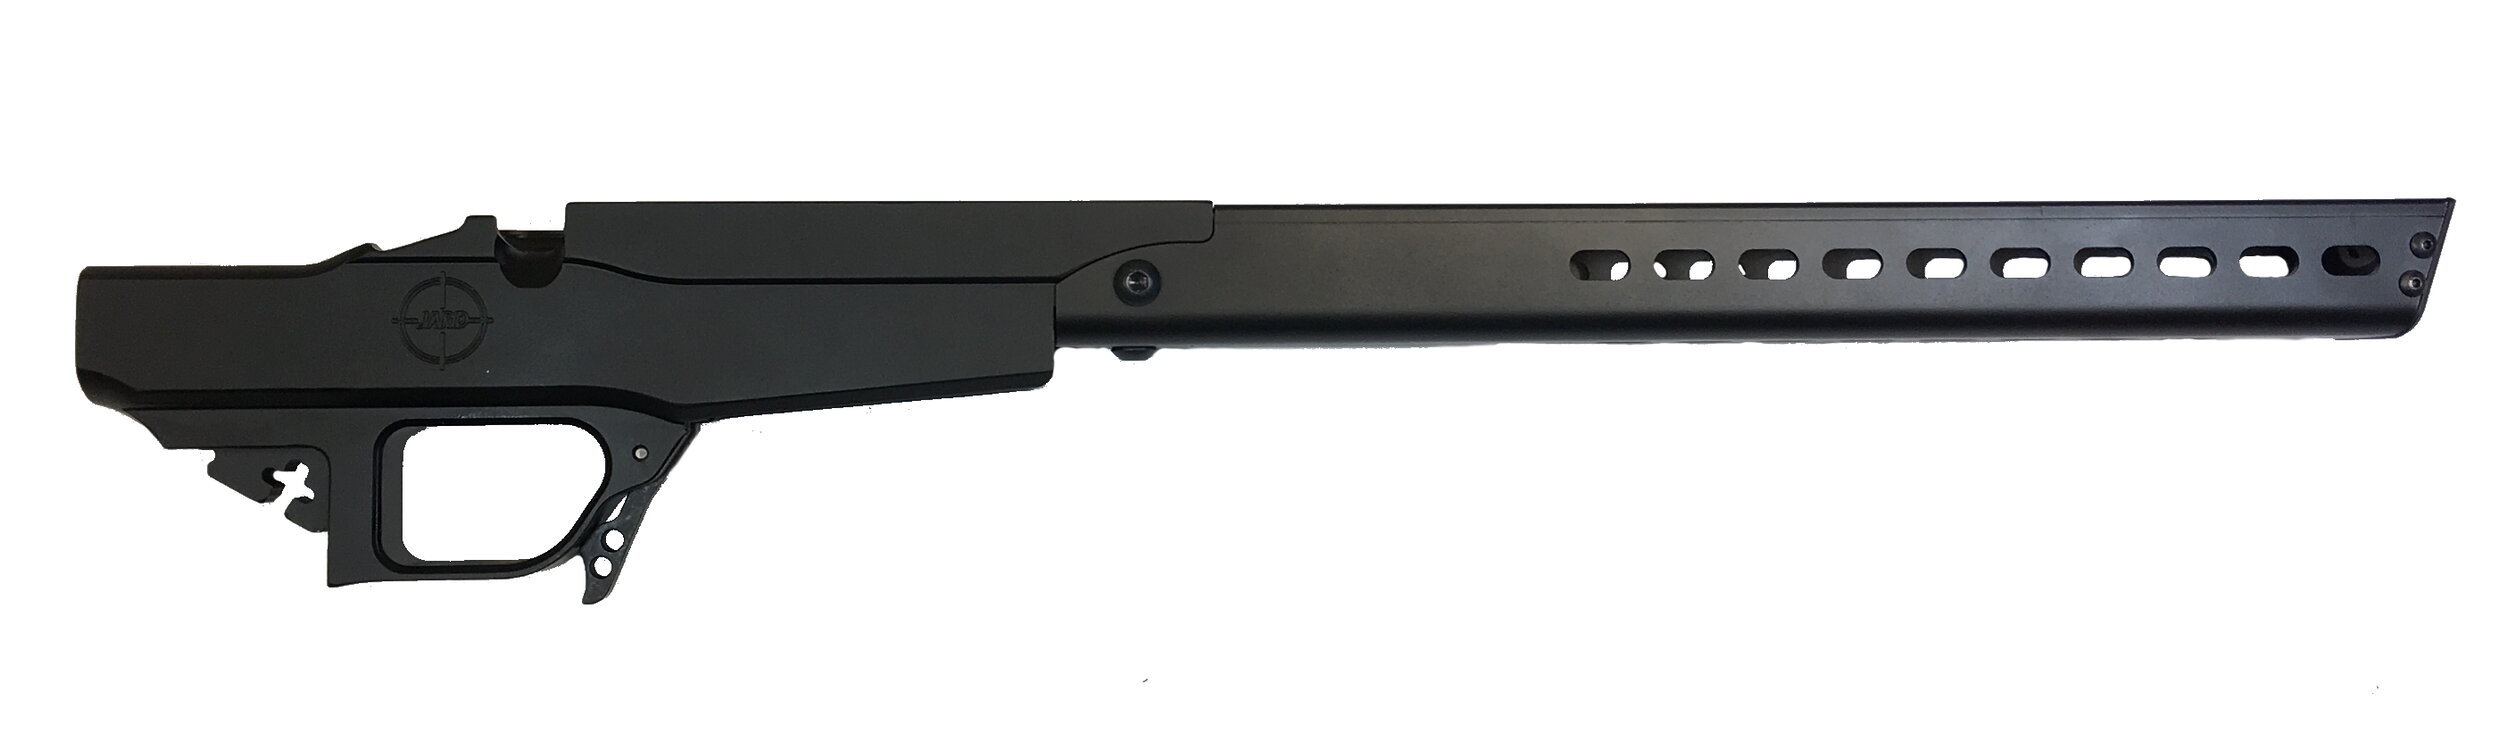 2 Piece Chassis Black.jpg